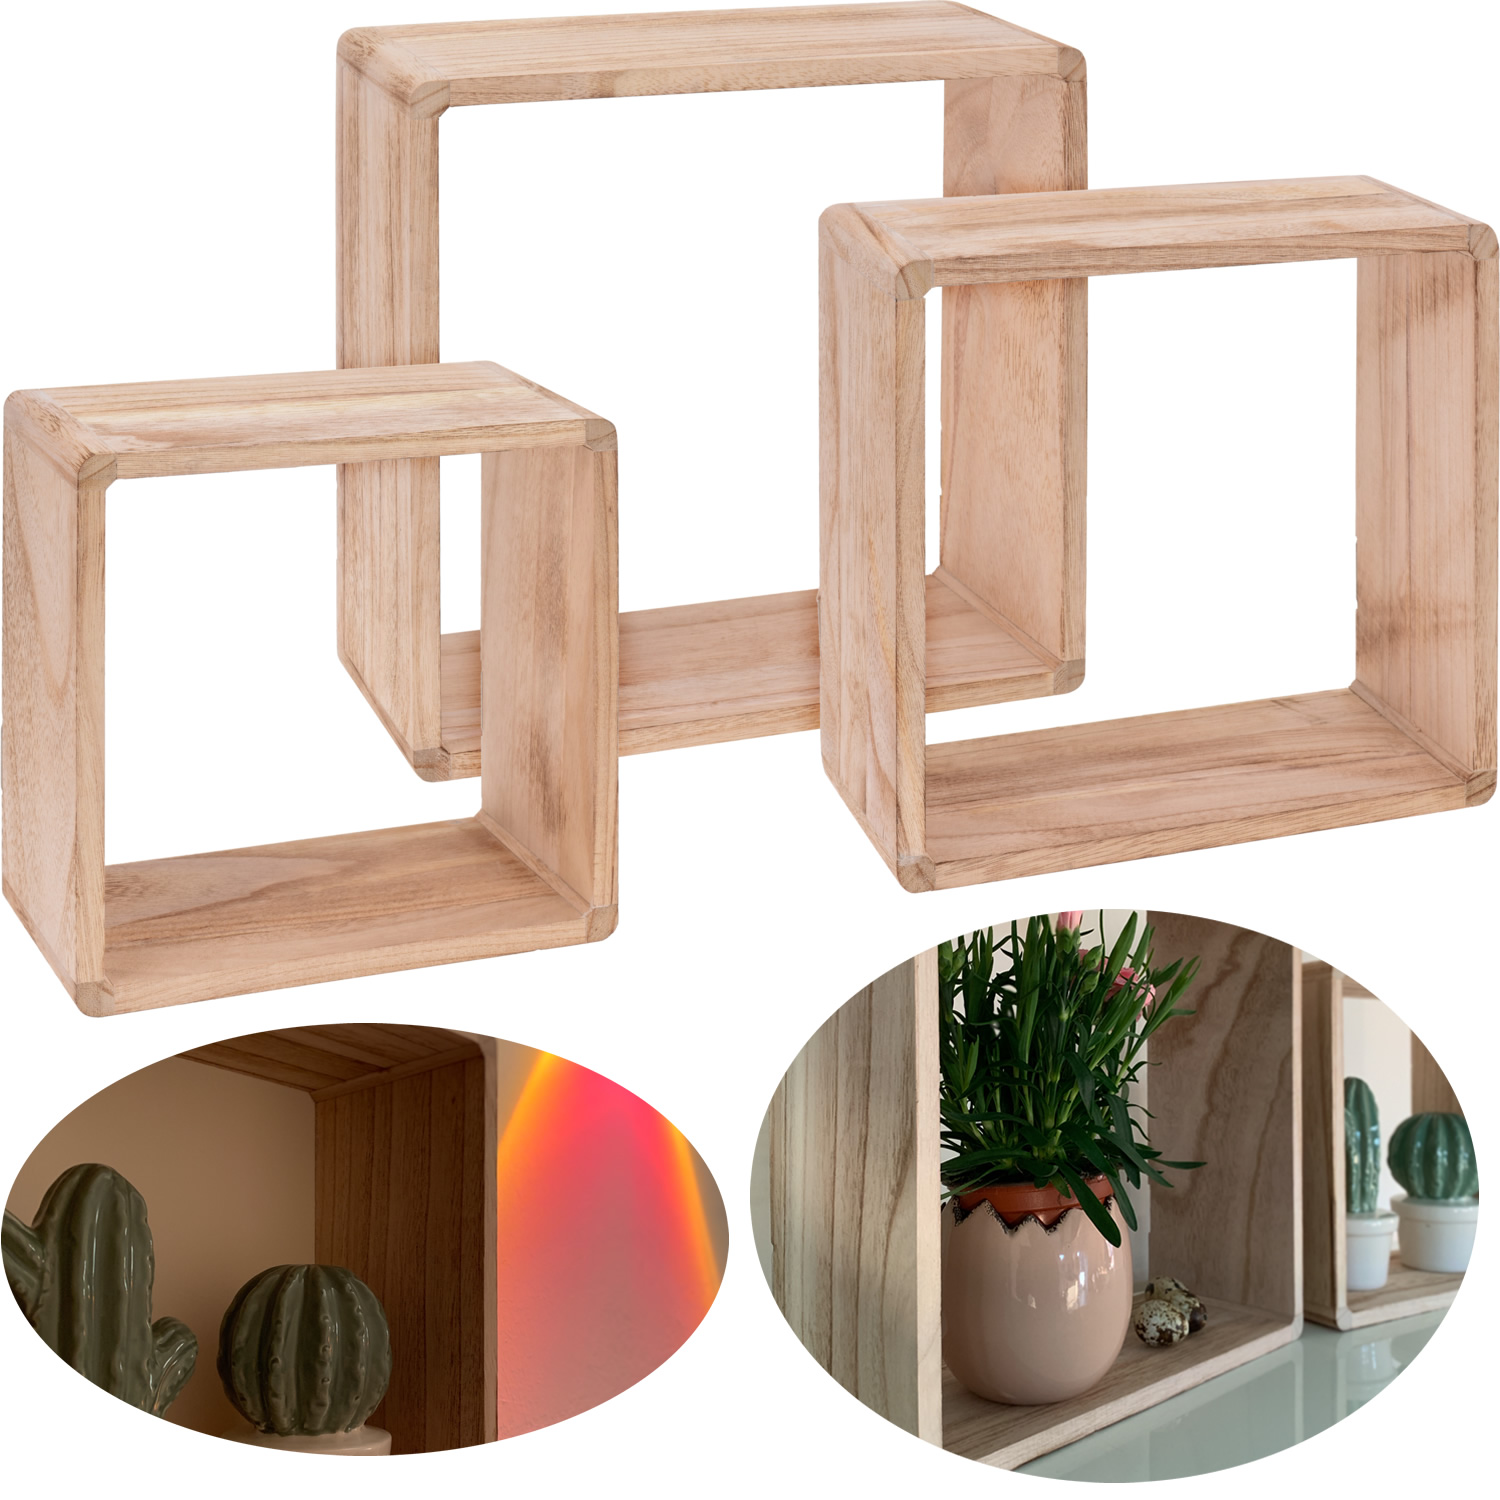 Cube Holz Regal Set 3teilig Quadrat Lounge Wand Regal Hangeregal